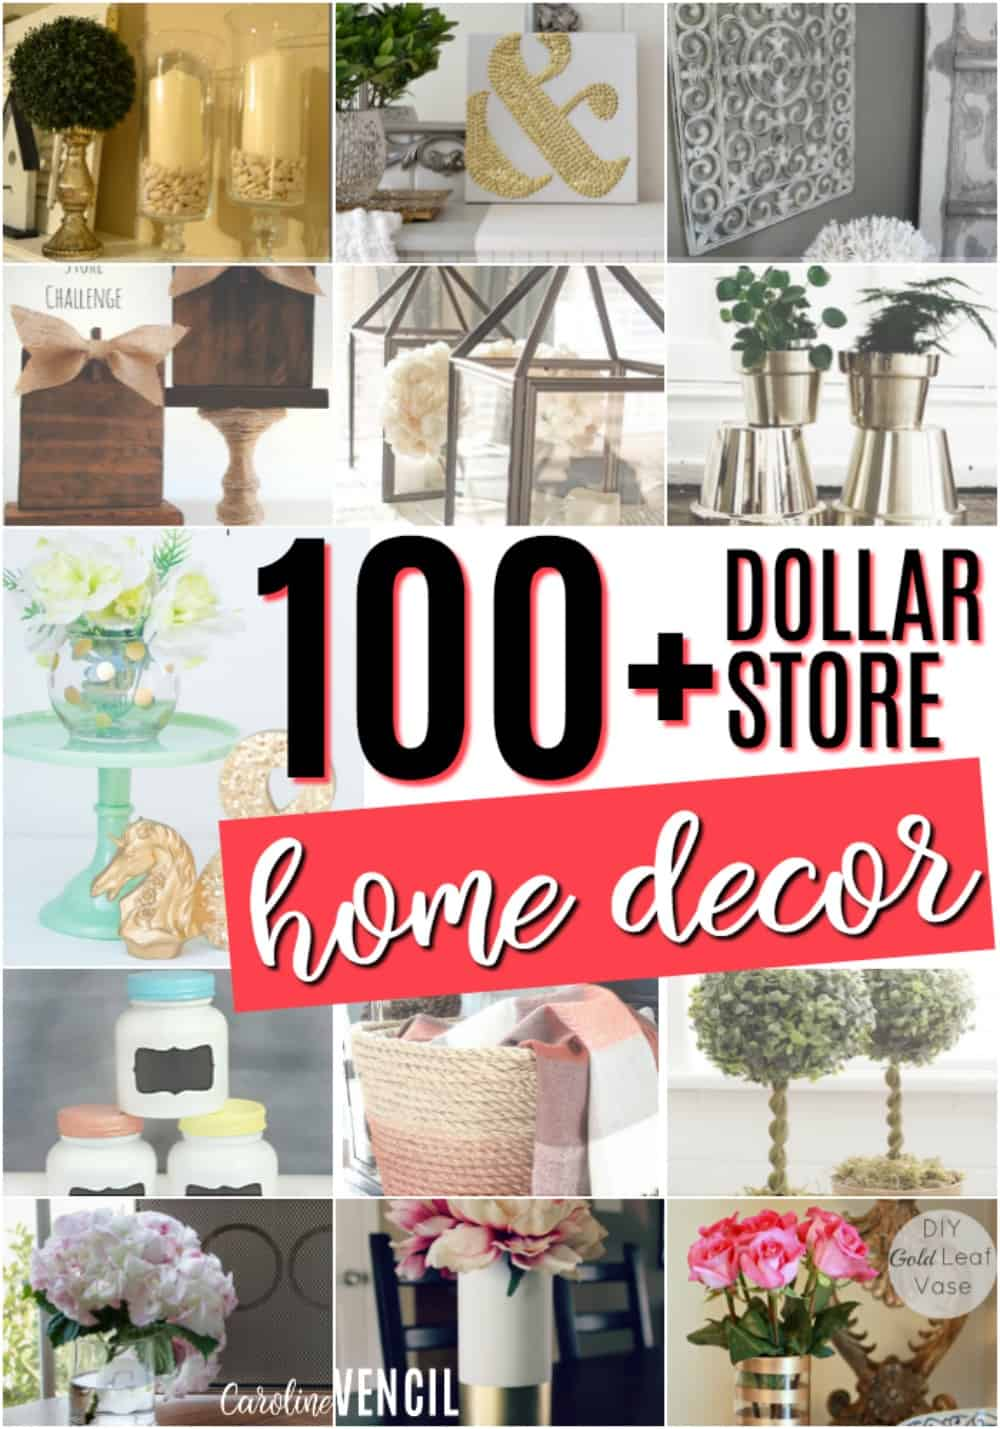 Dollar store home decor ideas caroline vencil for Store for home decor